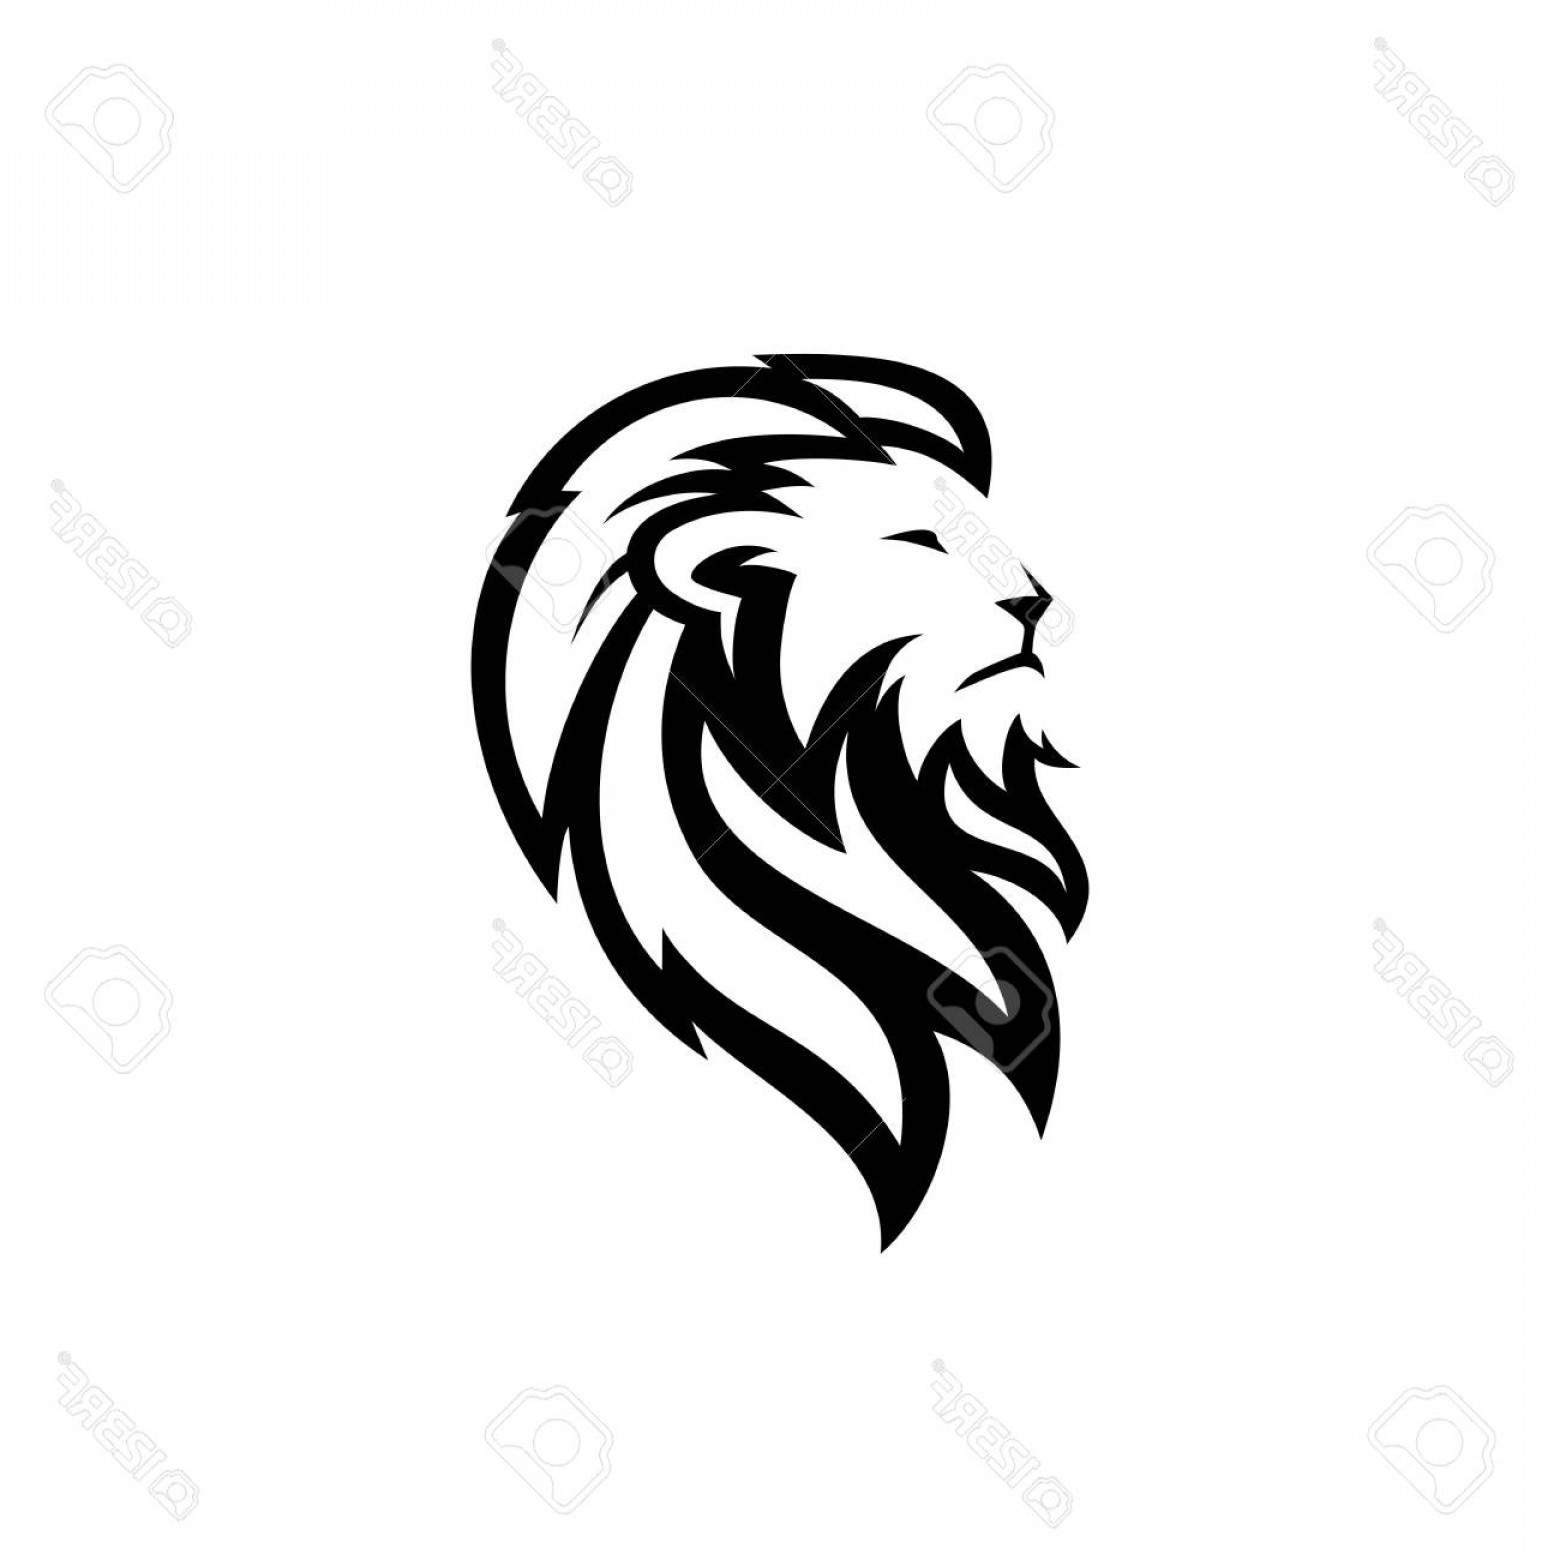 Free Vector Backgrounds Illustrator Free Download: Photostock Vector Lion Head Logo Vector Icon Download On White Background